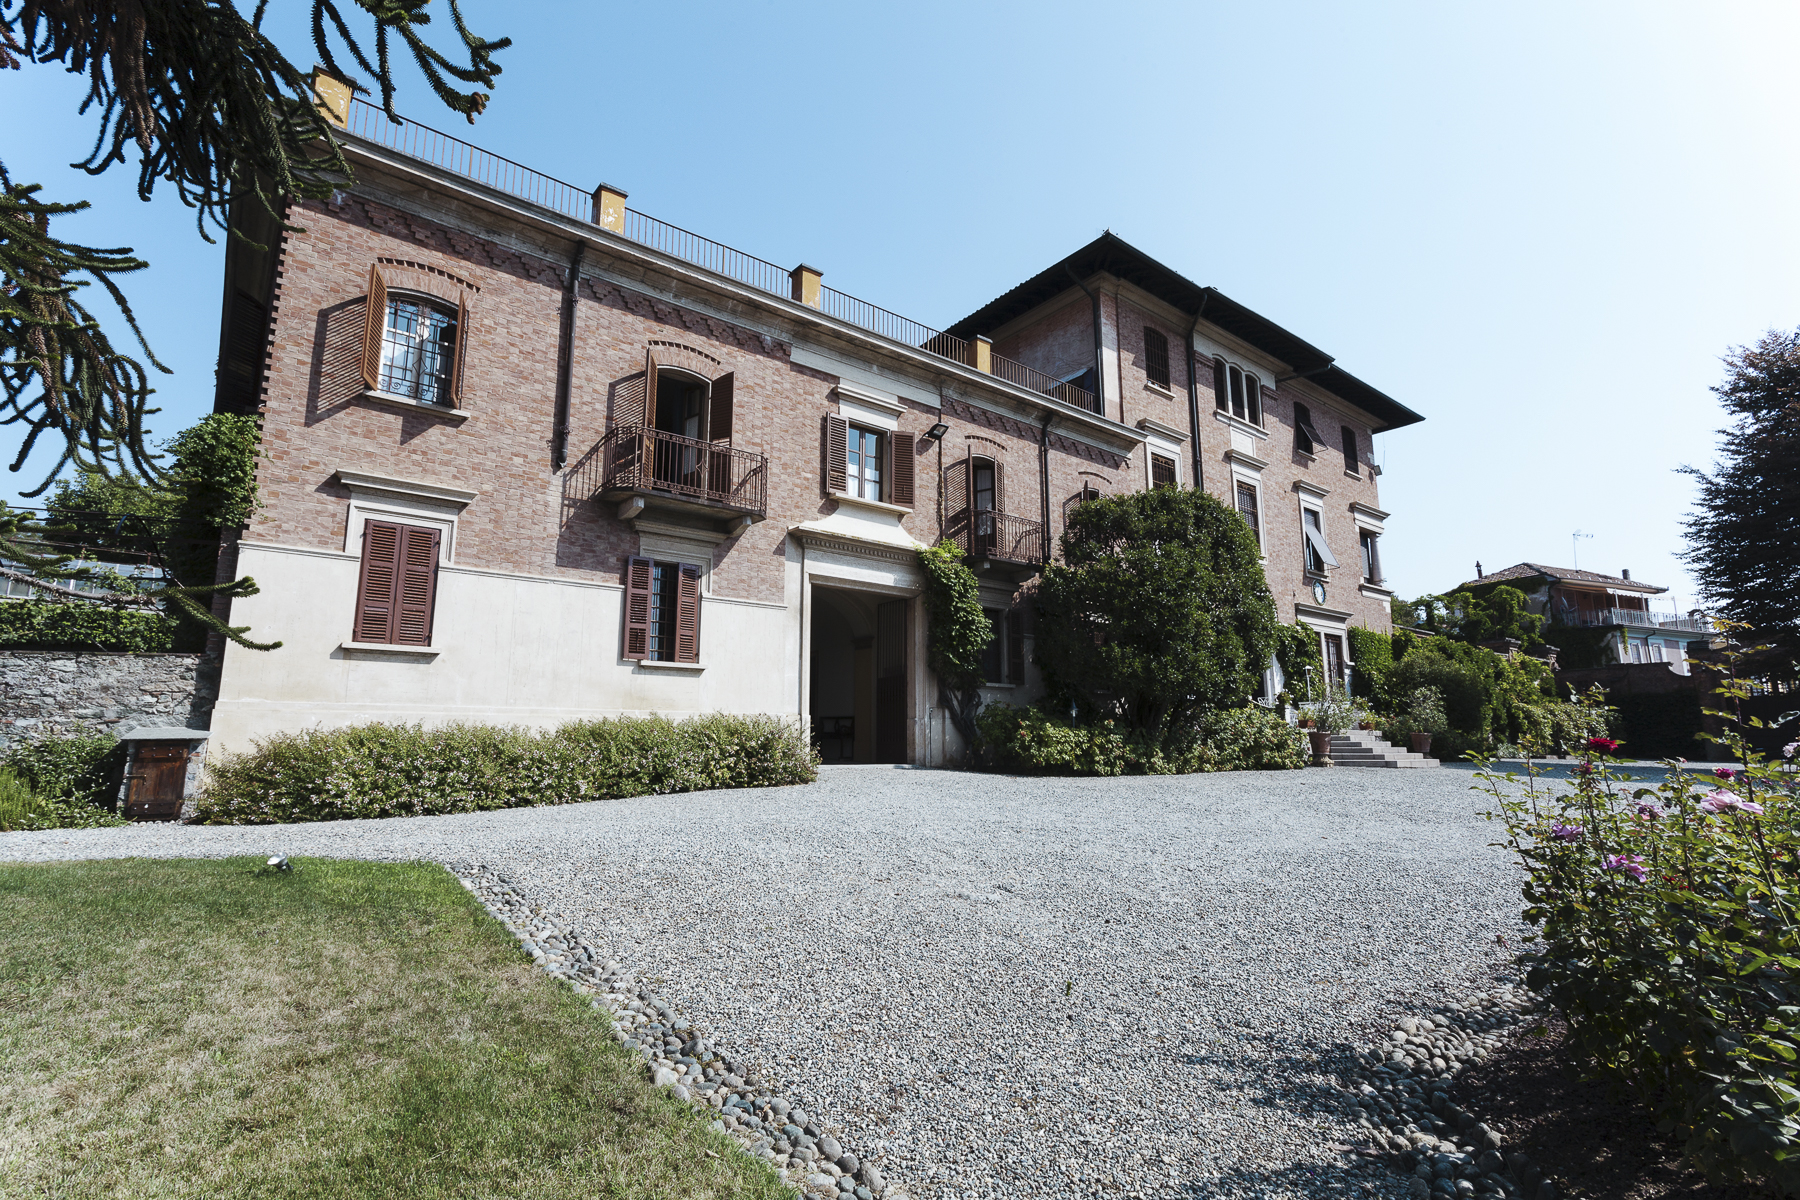 Additional photo for property listing at Unique Villa with swimming pool Piazza Rampone Other Biella, Biella 13883 Italien